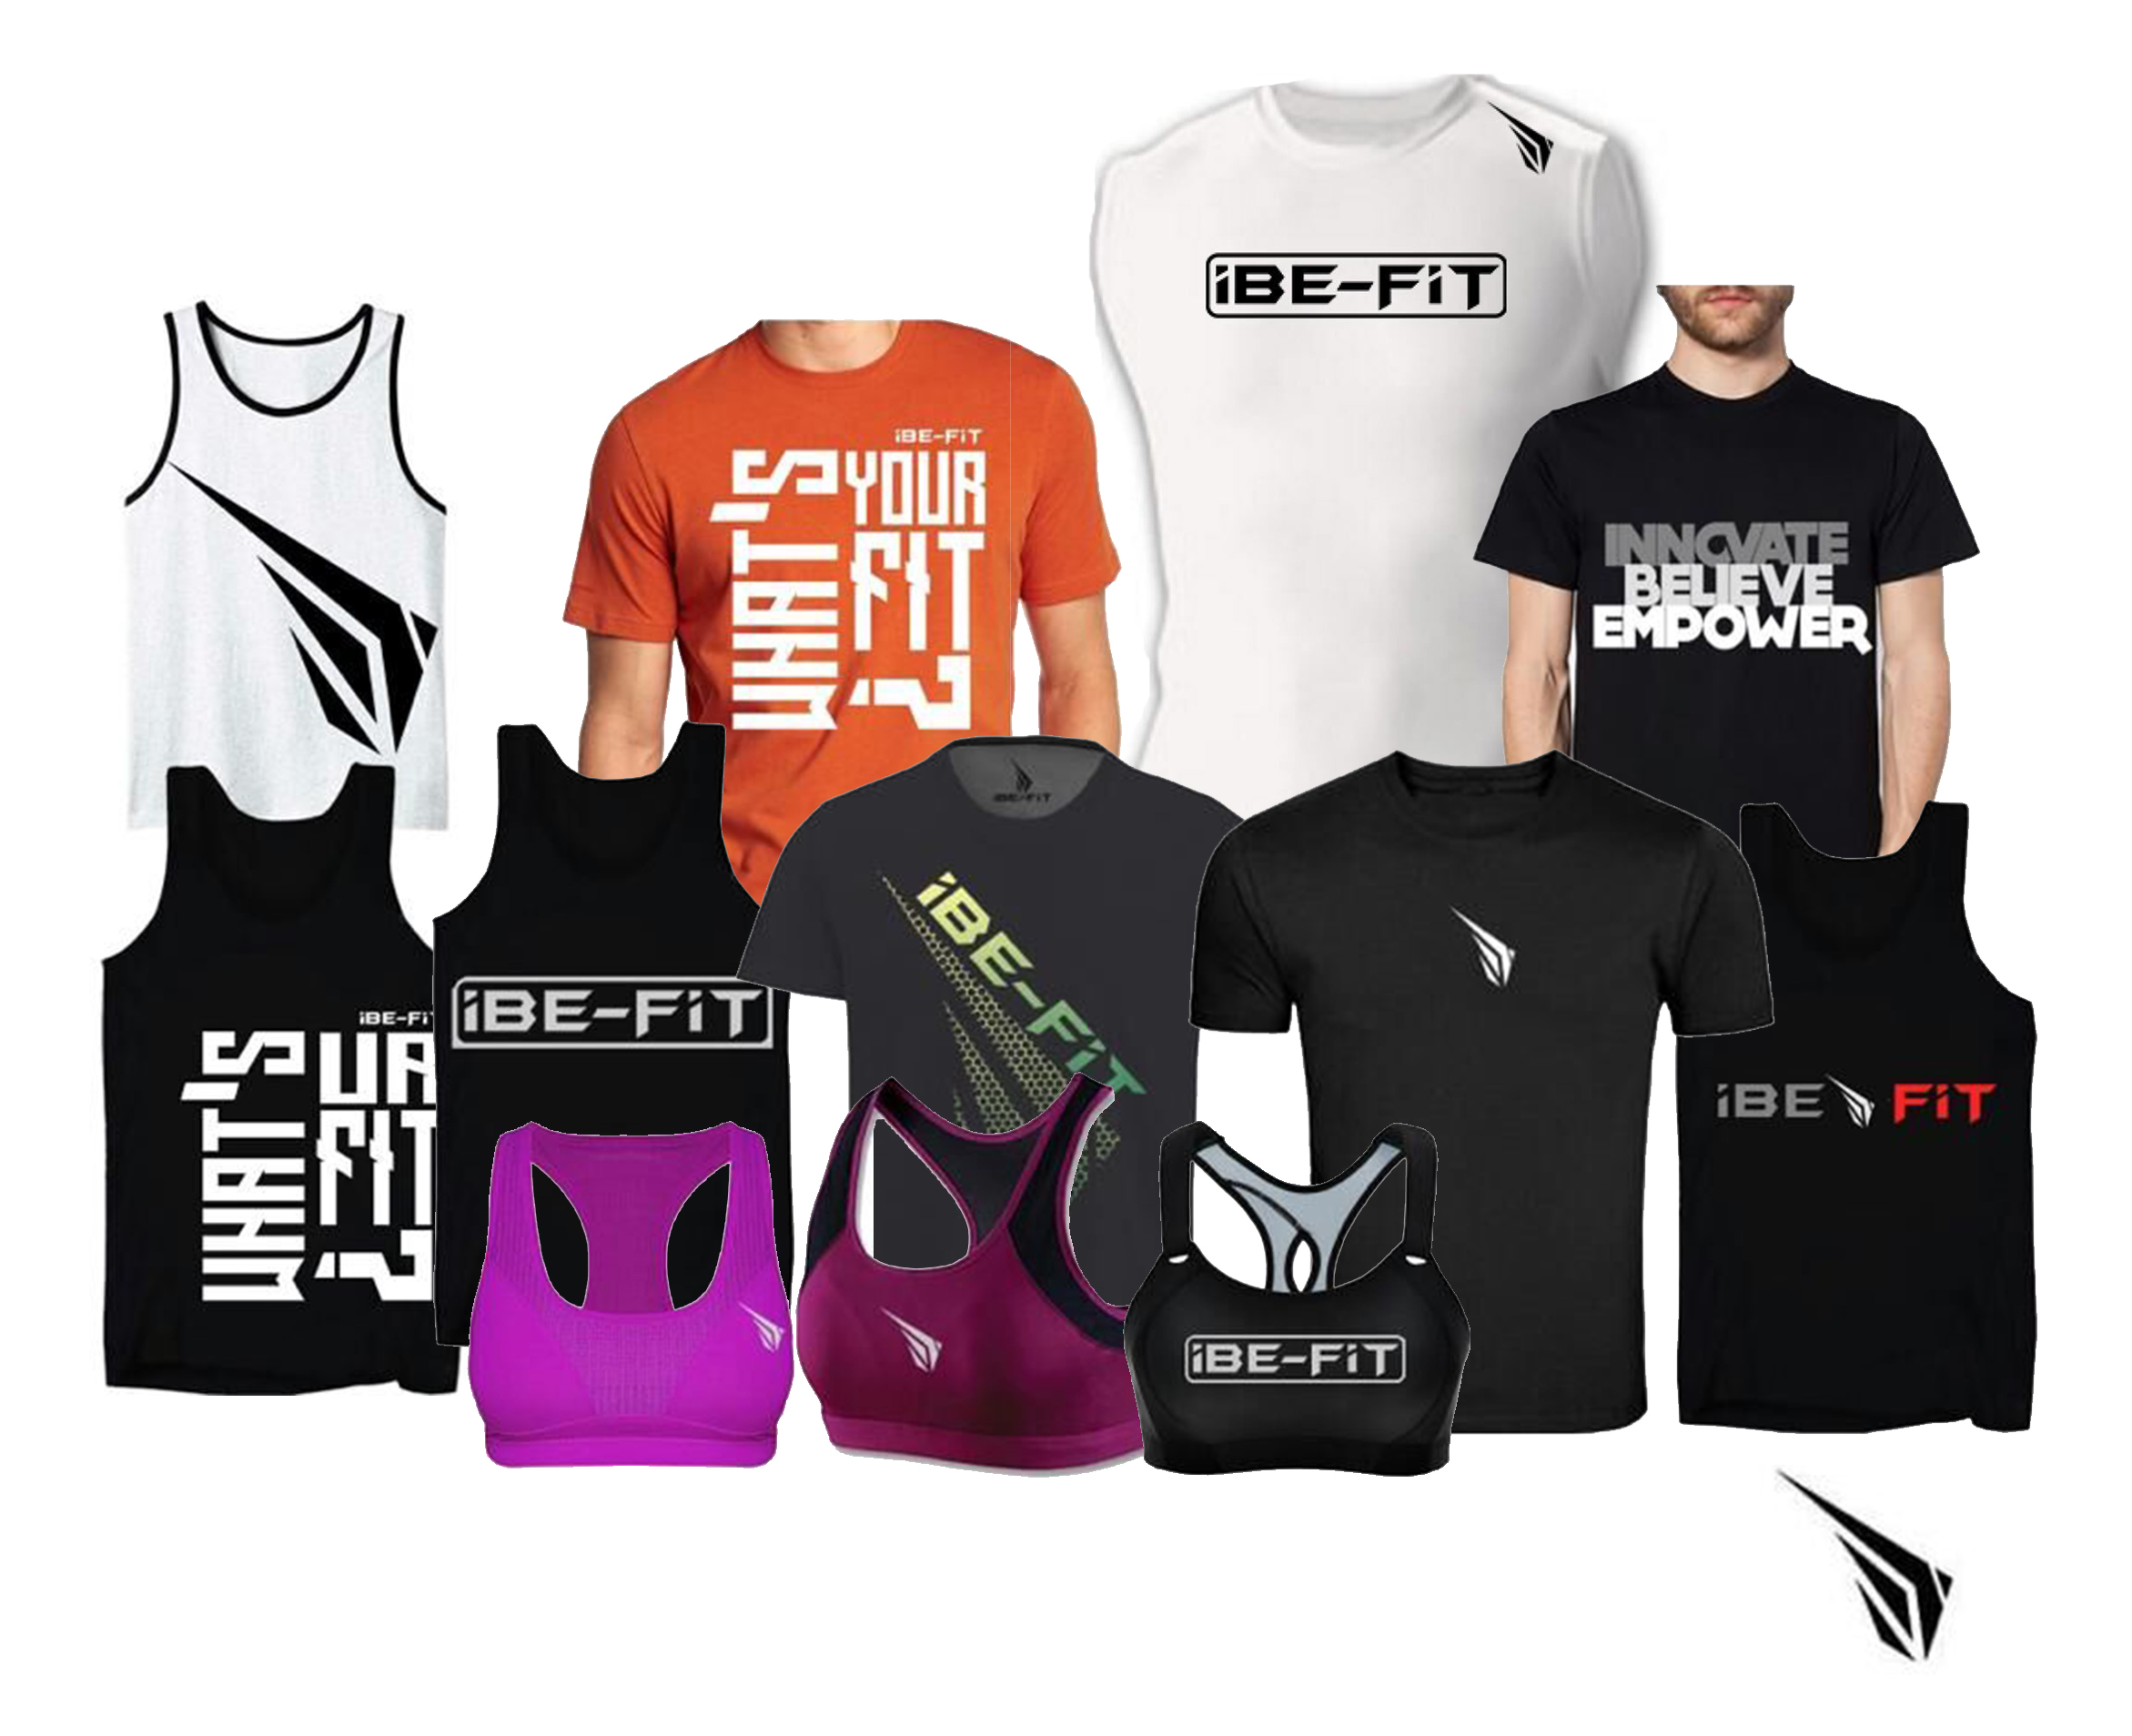 iBE-FiT Merchandise - Coming soon